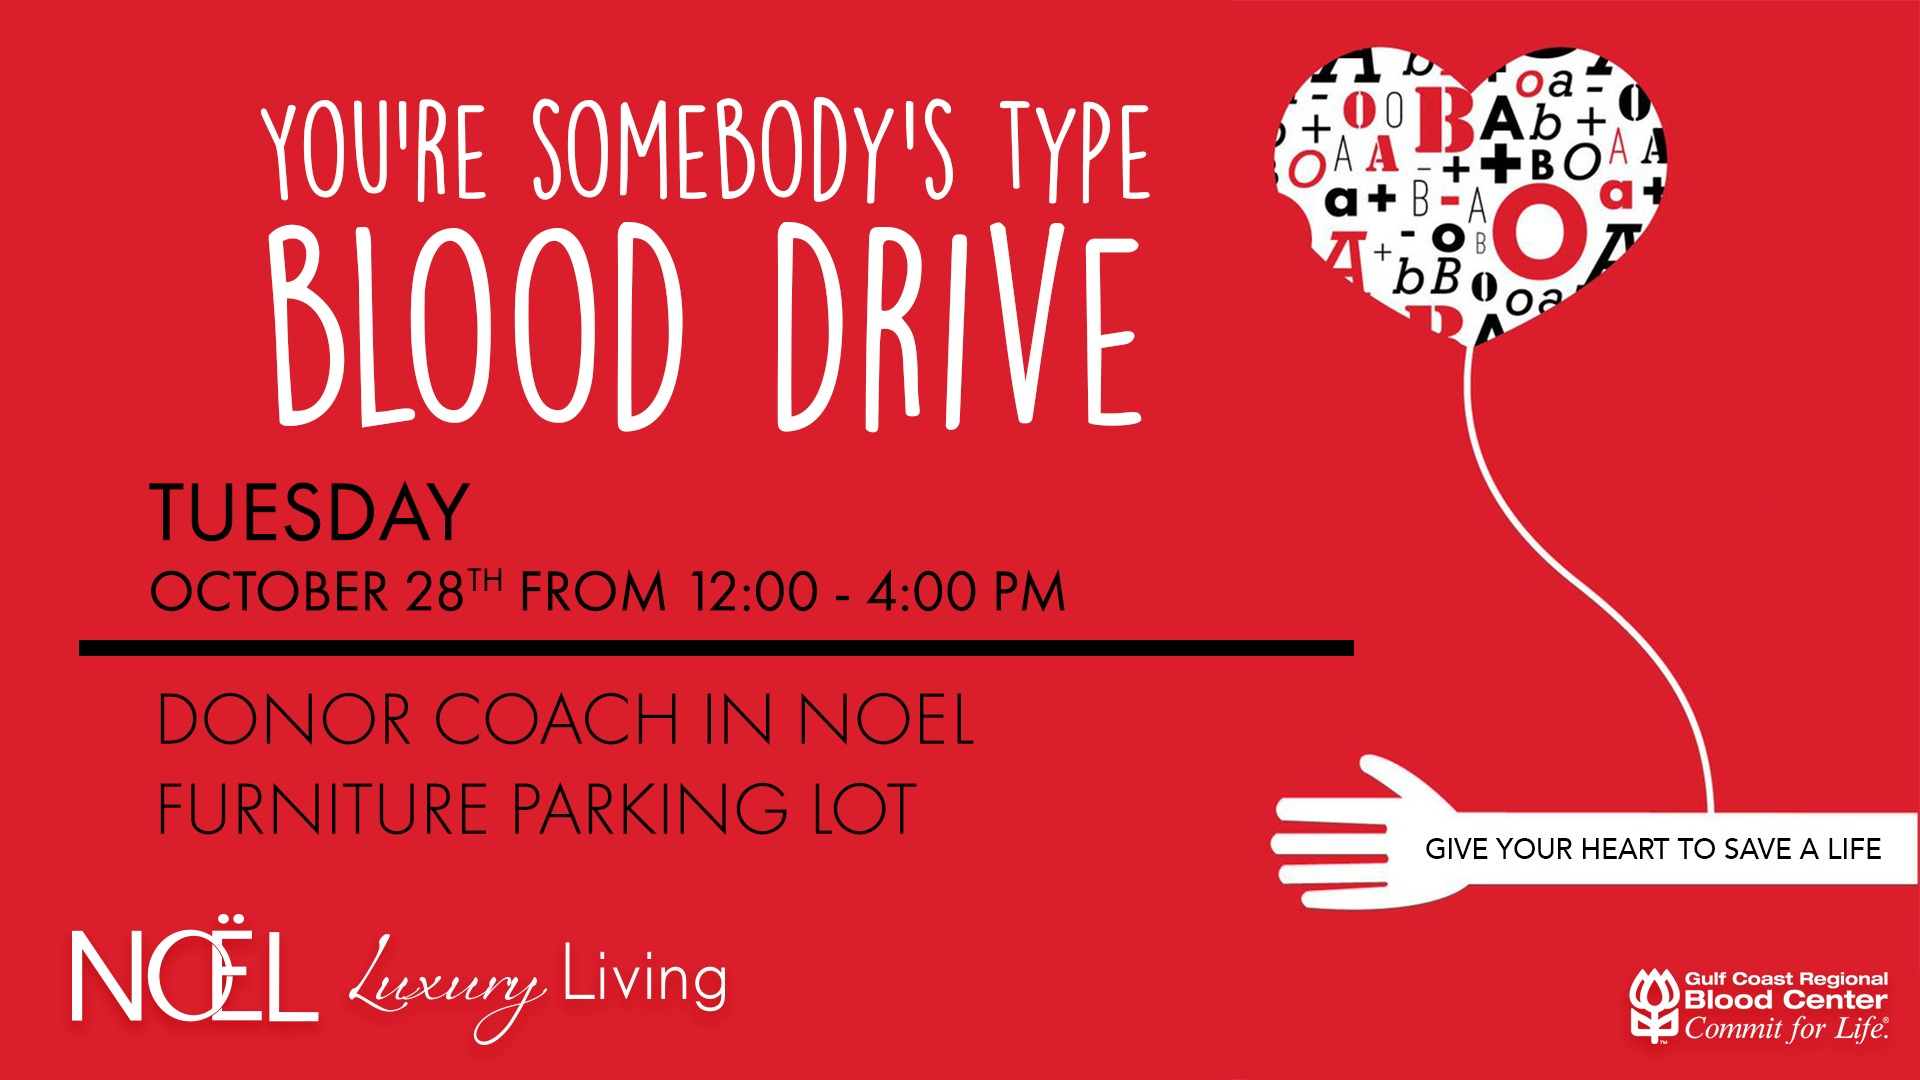 SAVE LIVES NOEL HOME BLOOD DRIVE OCTOBER 2018